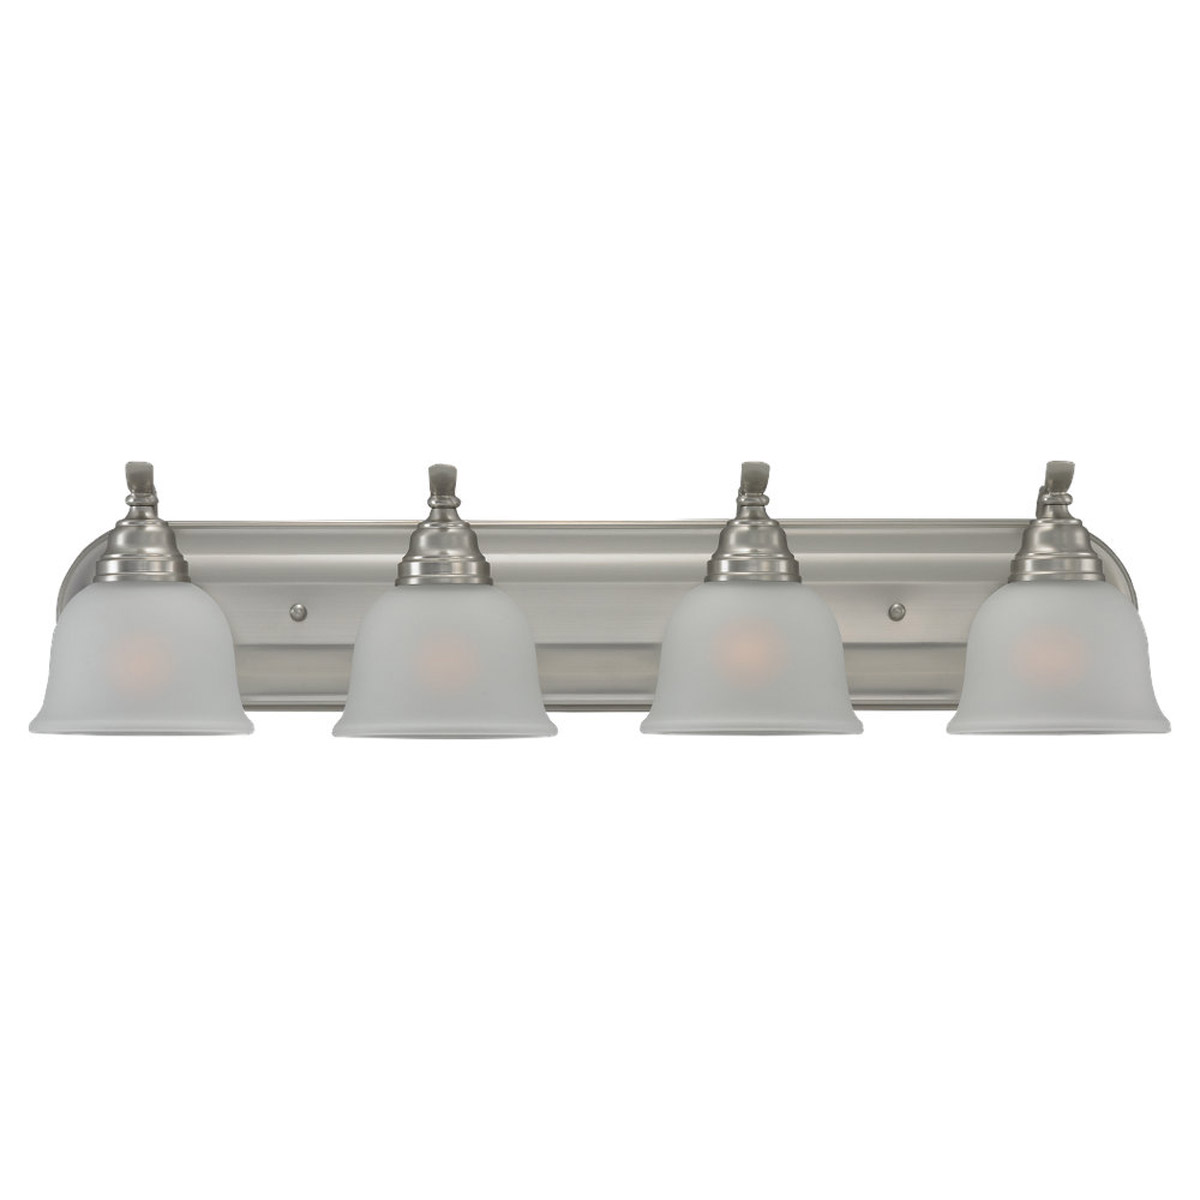 Sea Gull Lighting Wheaton 4 Light Bath Vanity in Brushed Nickel 44628BLE-962